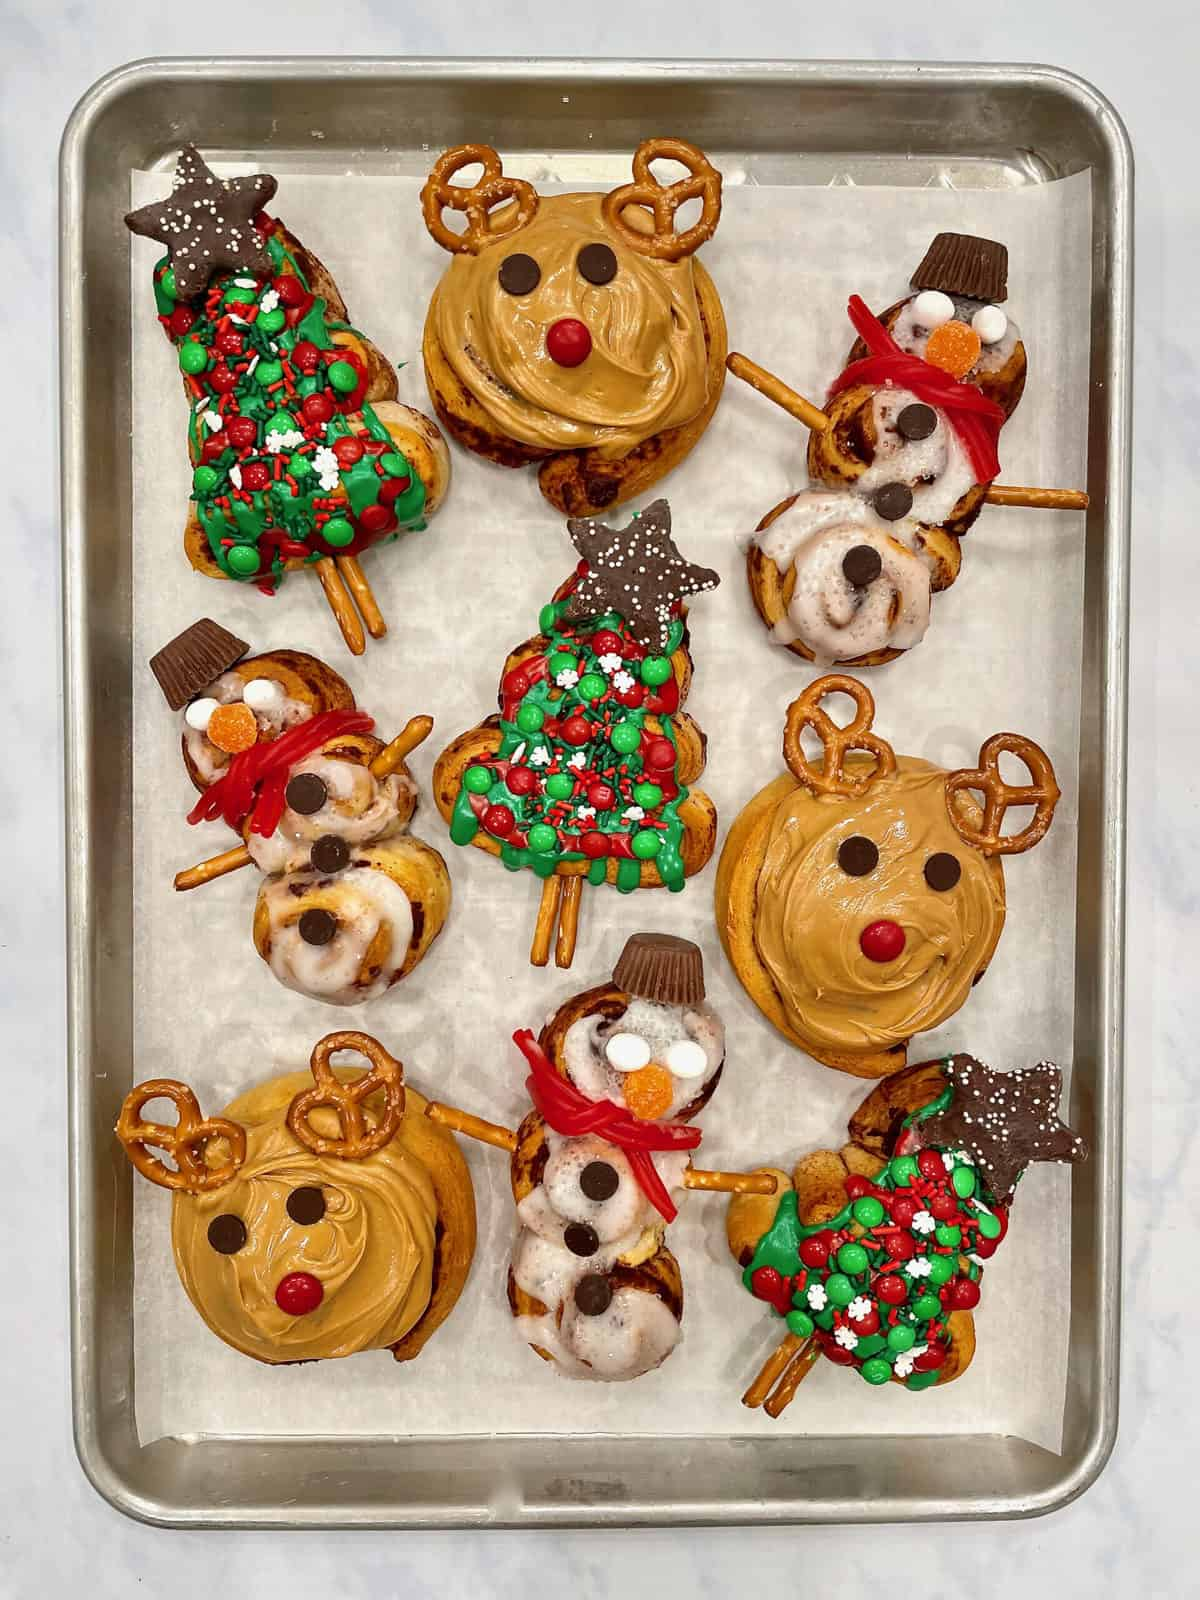 Festive Christmas-Shaped Cinnamon Rolls